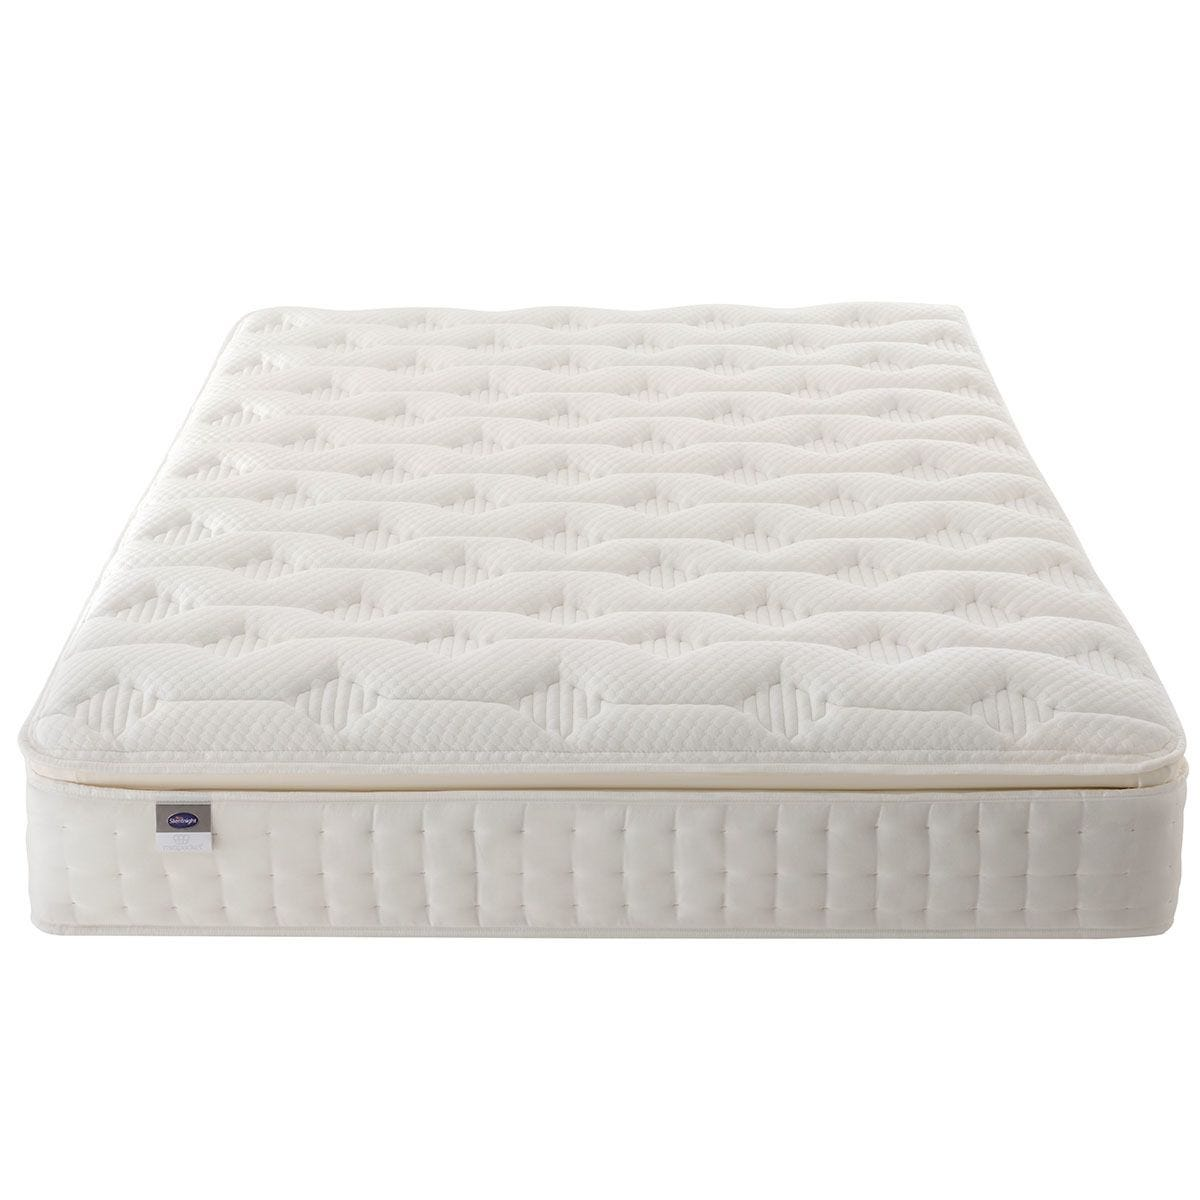 Silentnight Mirapocket Latex 1000 Mattress - White Double